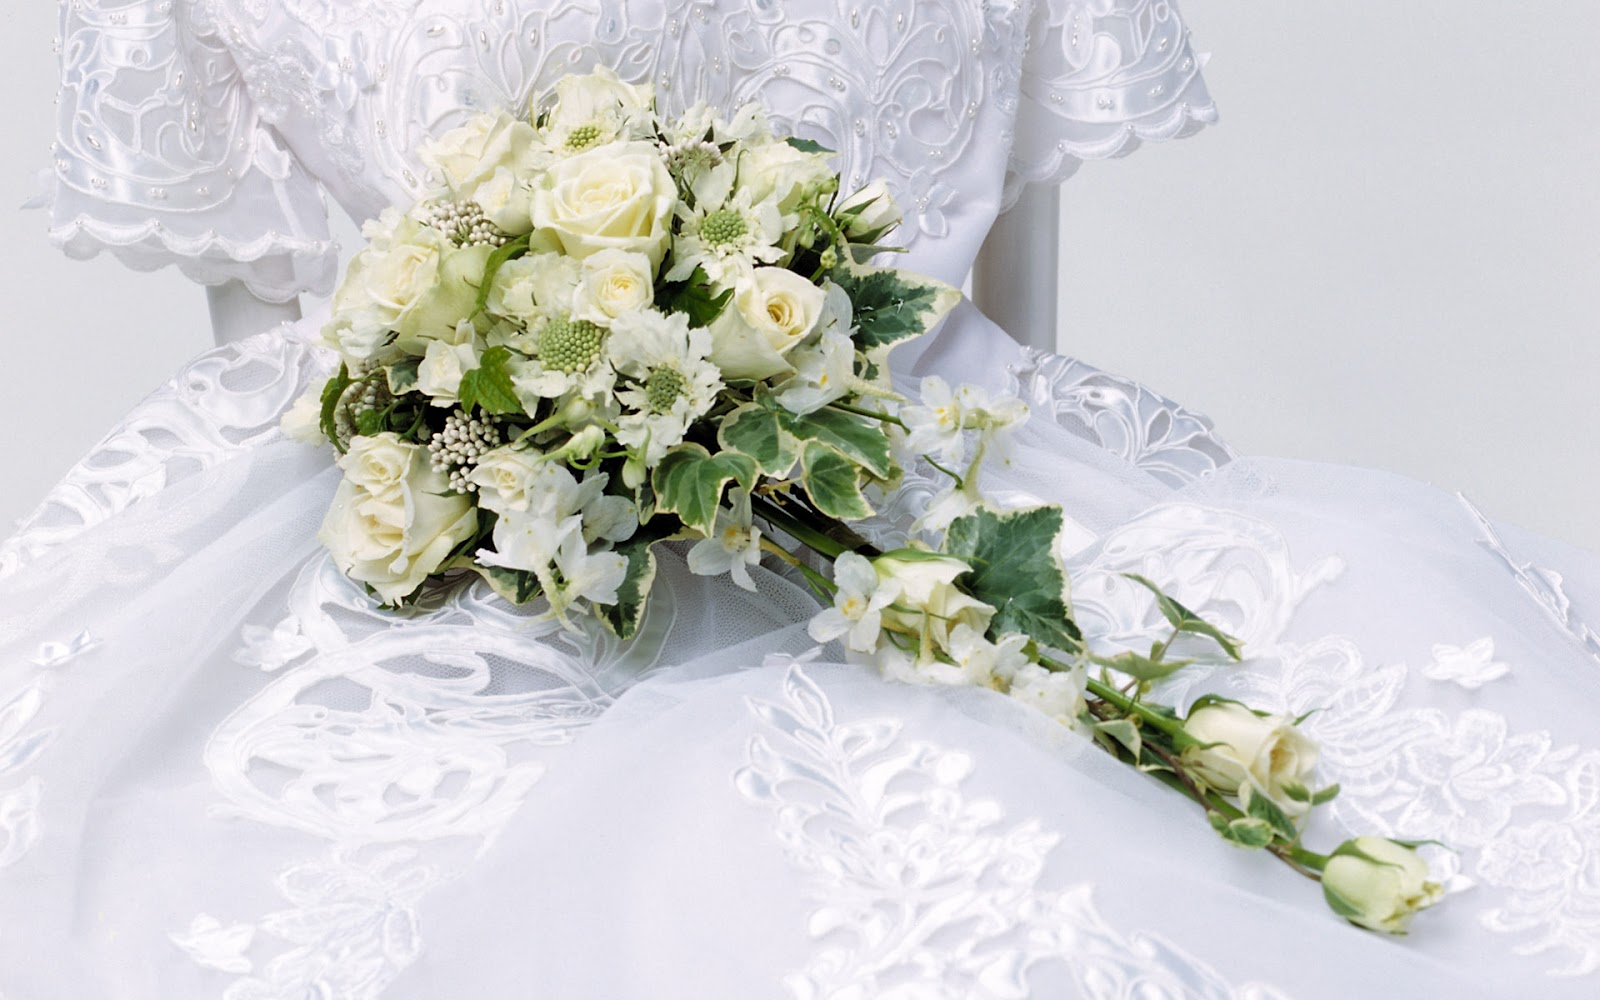 white wedding bouquet wallpaper - photo #14